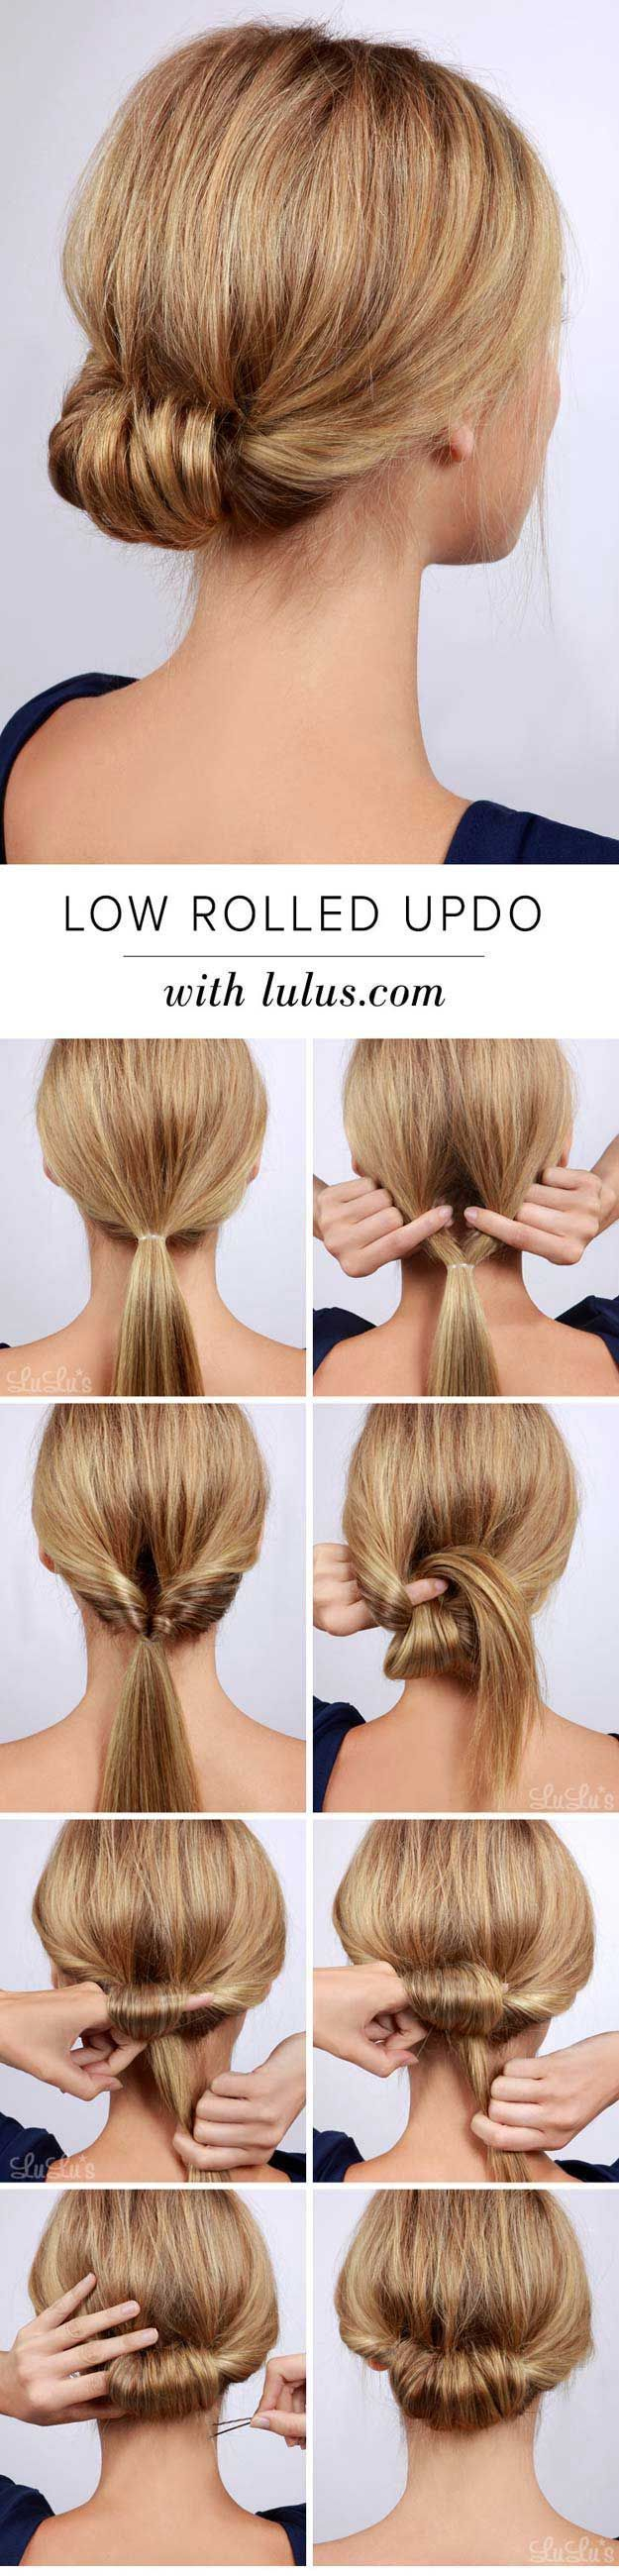 Best hairstyles for summer low rolled updo hair tutorial easy